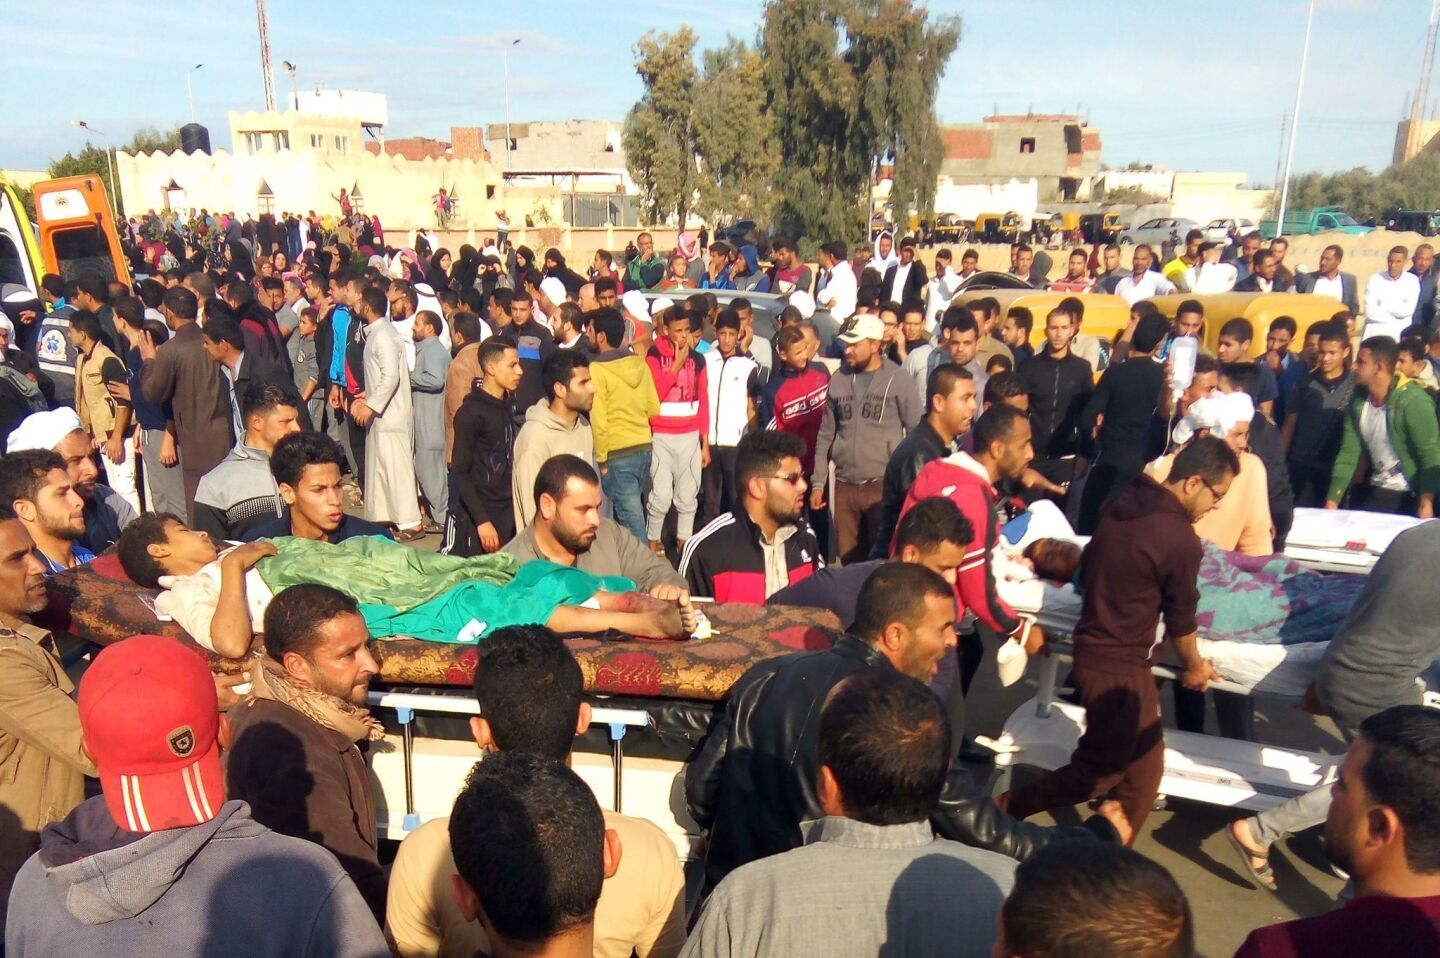 Egyptians carry victims on stretchers after an attack on the Rawda mosque near the North Sinai provincial capital of Arish.